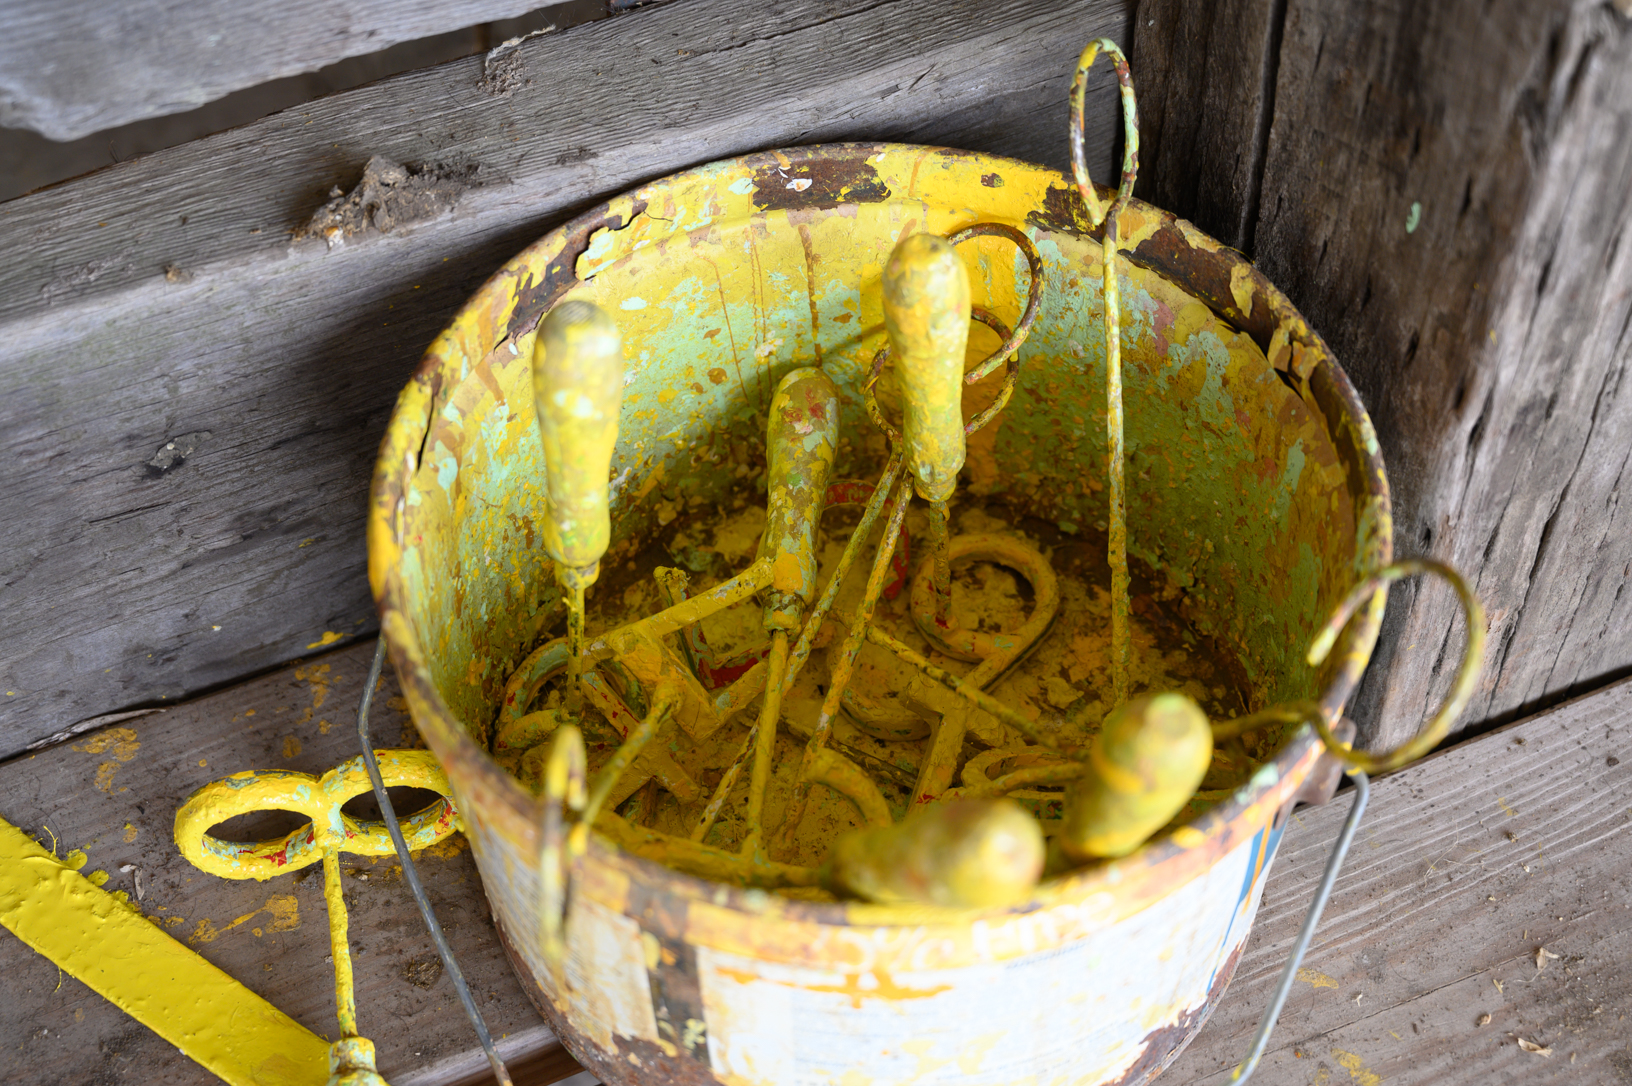 A bucket of yellow paint and metal letters are used to mark livestock prior to shows at the Jones County Fair. Photo credit: Joseph L. Murphy/Iowa Soybean Association